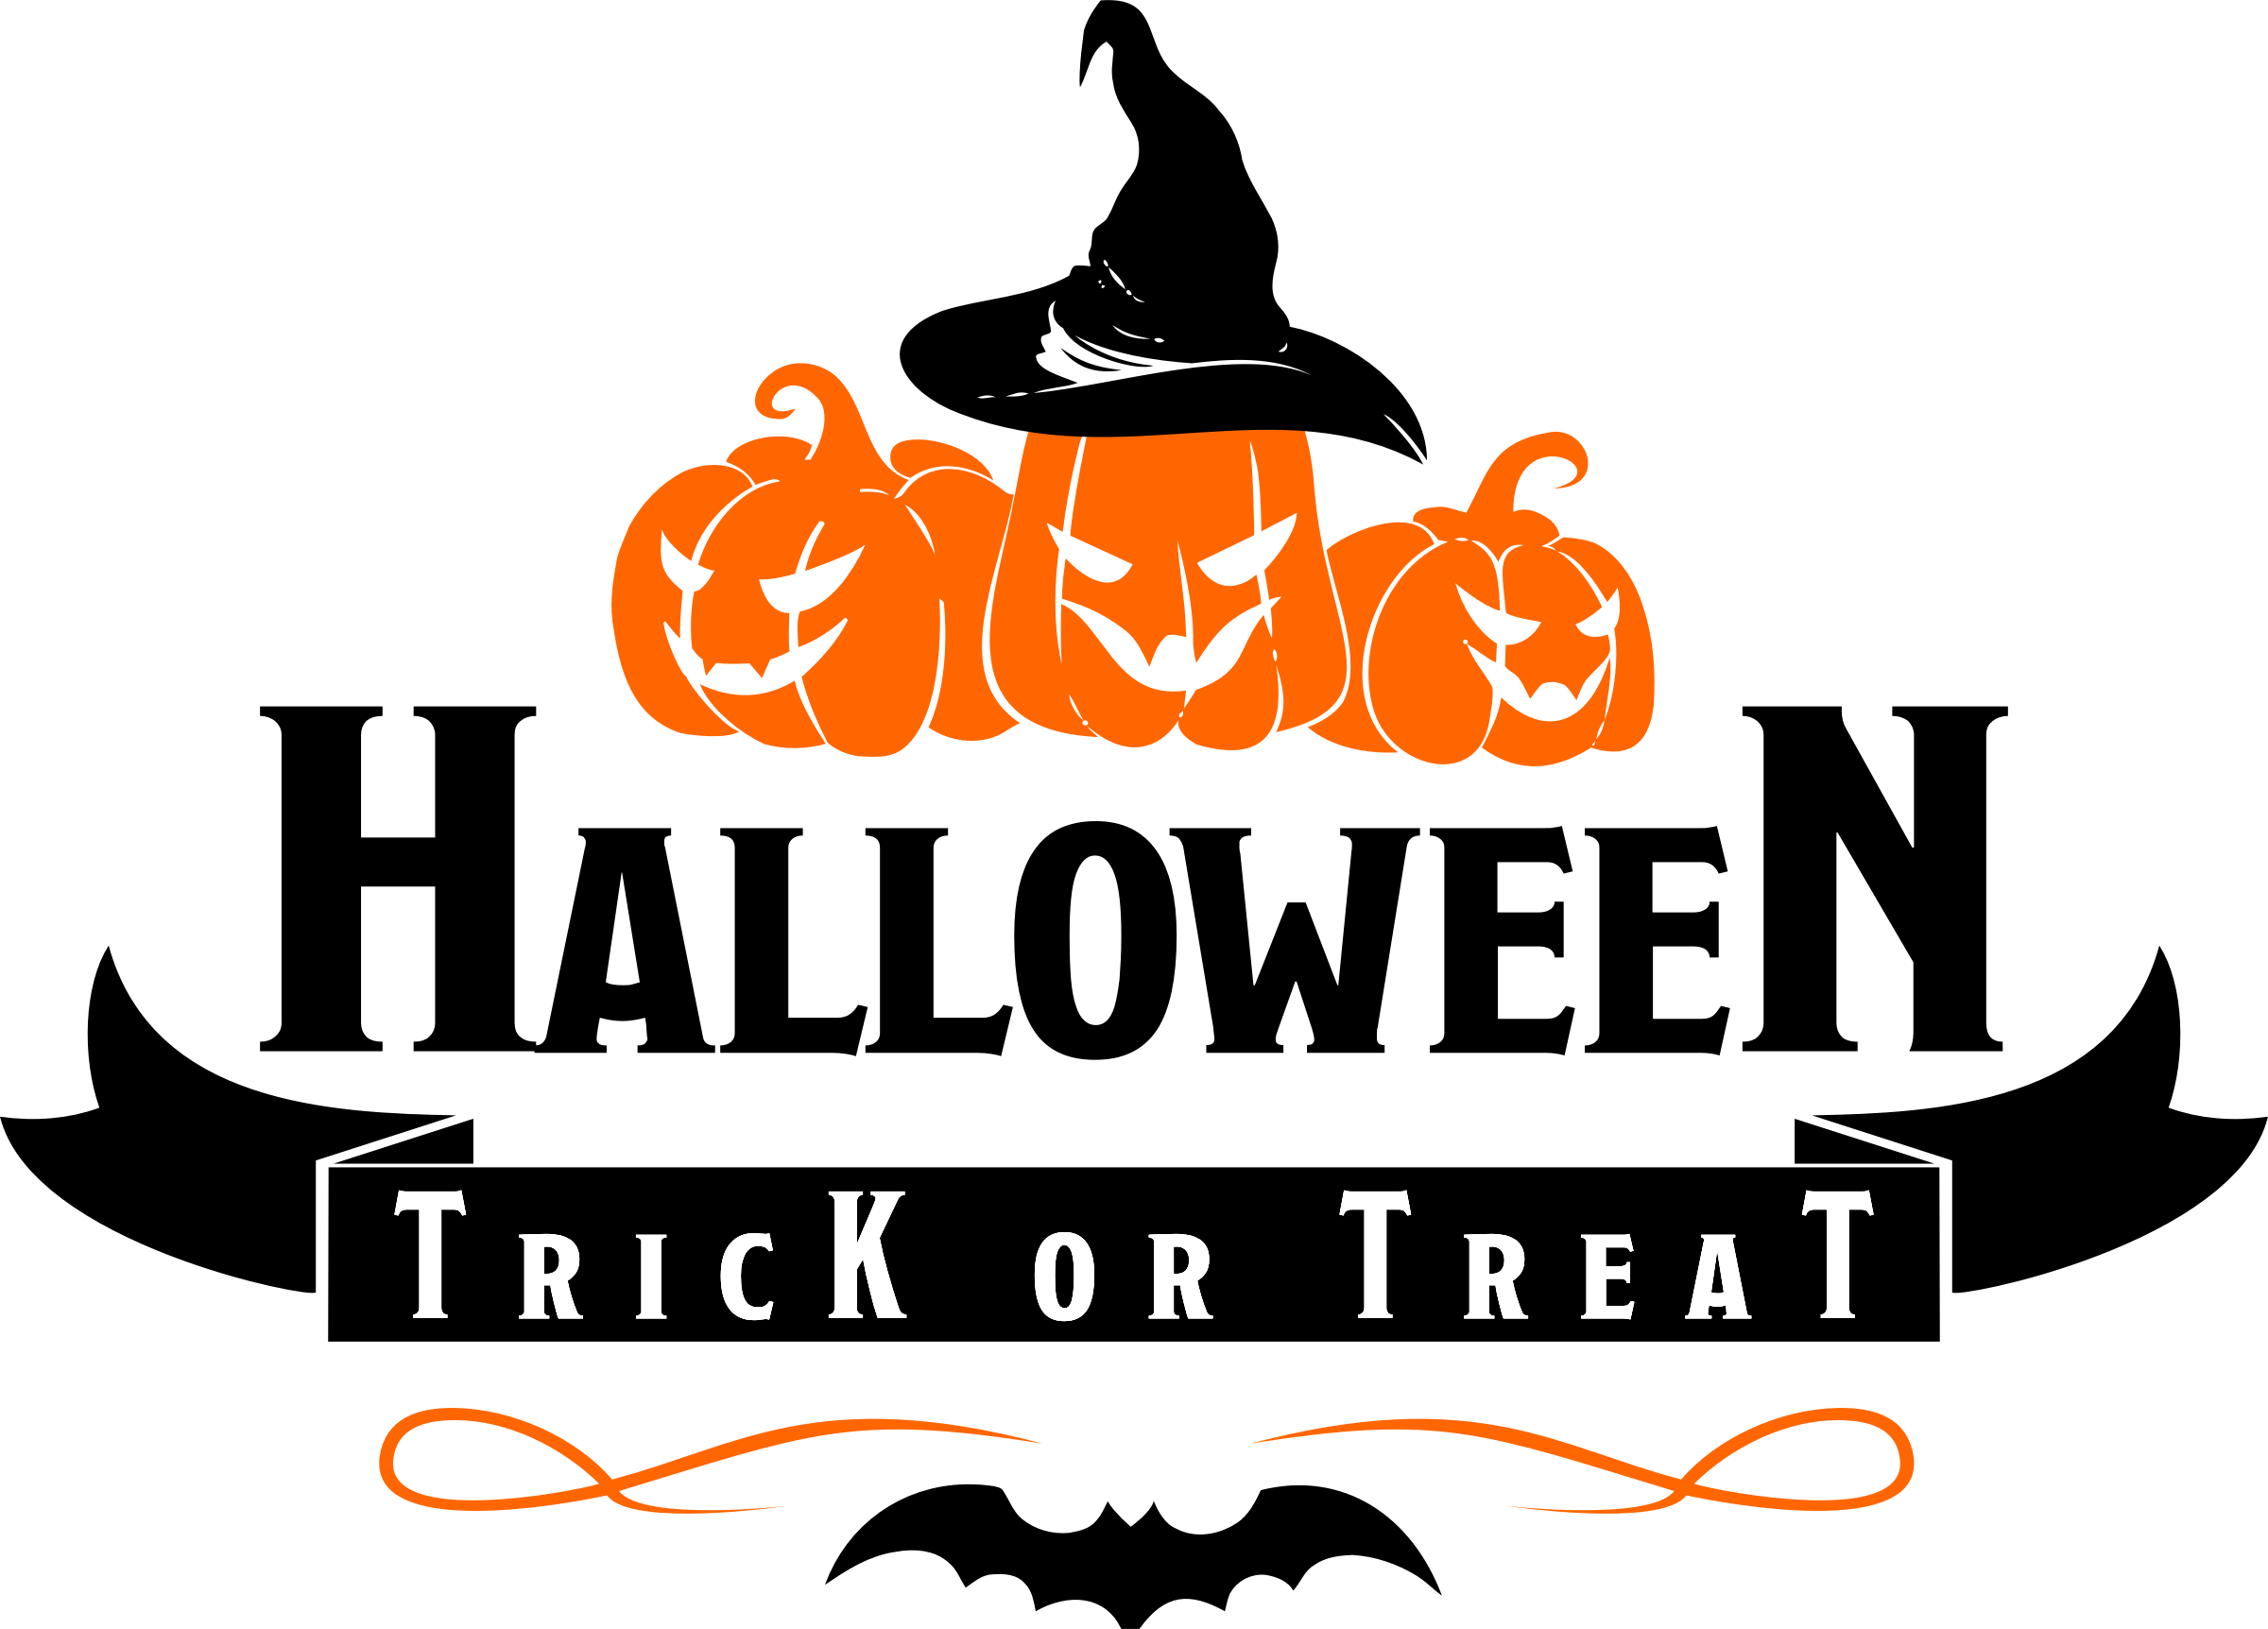 Halloween trick or treat clipart banner library library Clipart - Halloween - Trick or Treat Logo banner library library